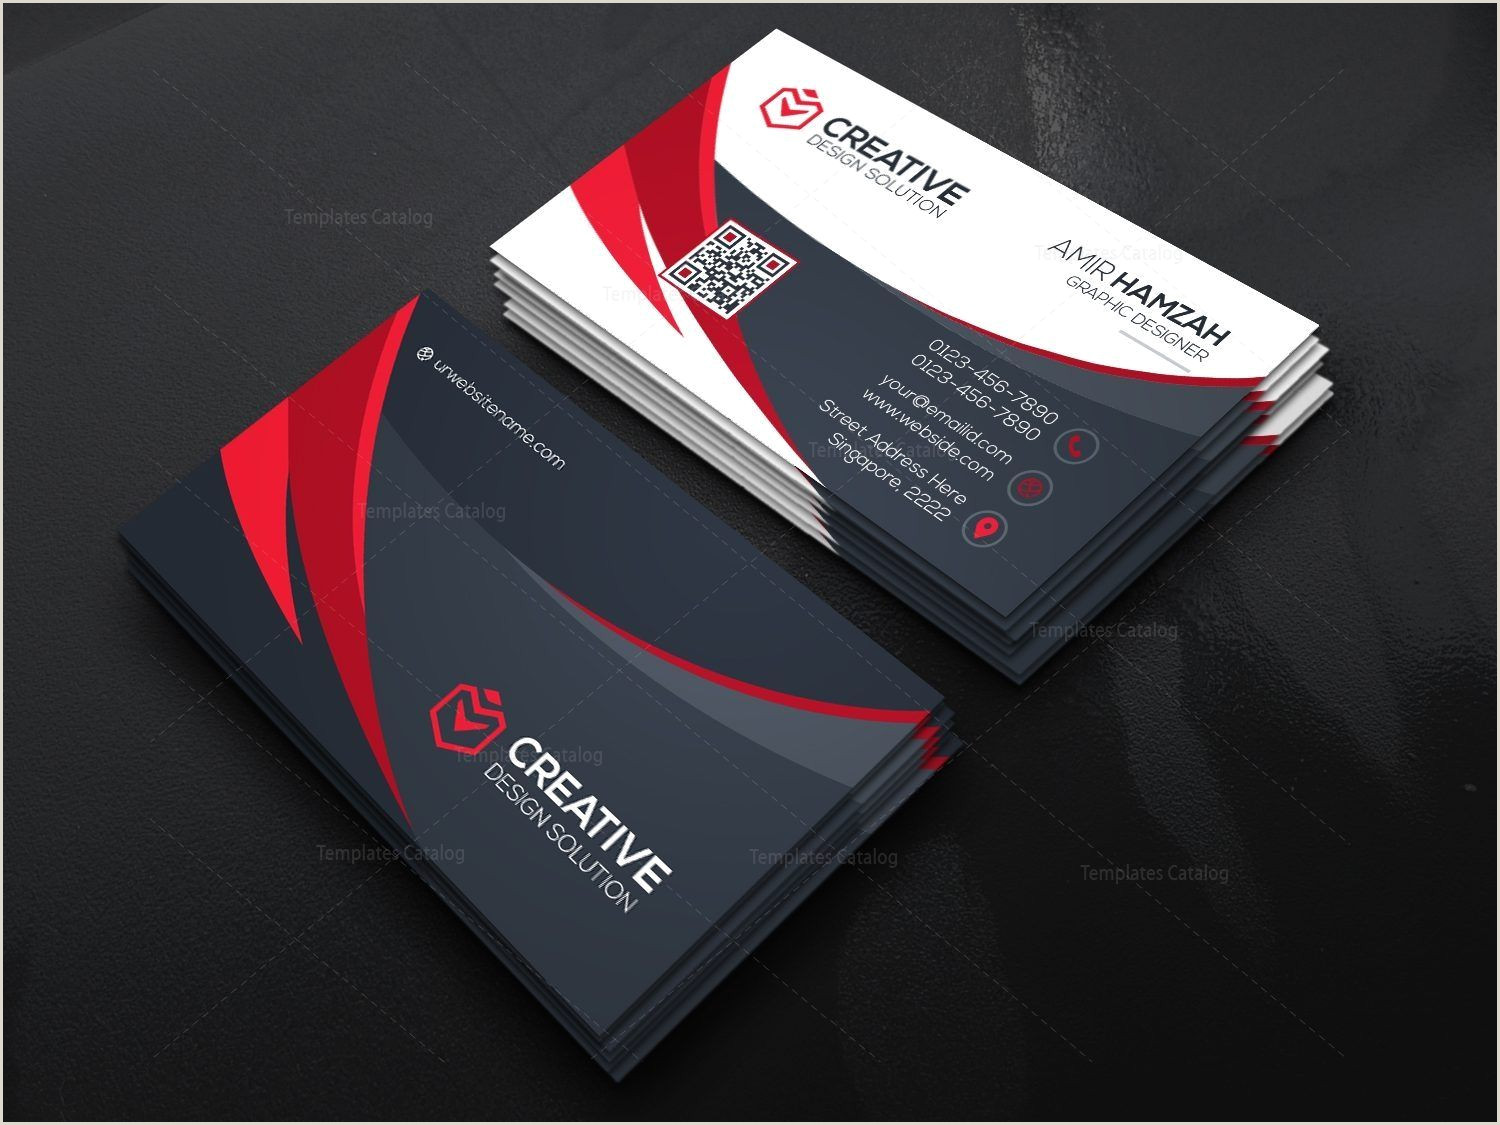 Professional Looking Business Cards Stylish Psd Business Card Templates Graphic Templates In